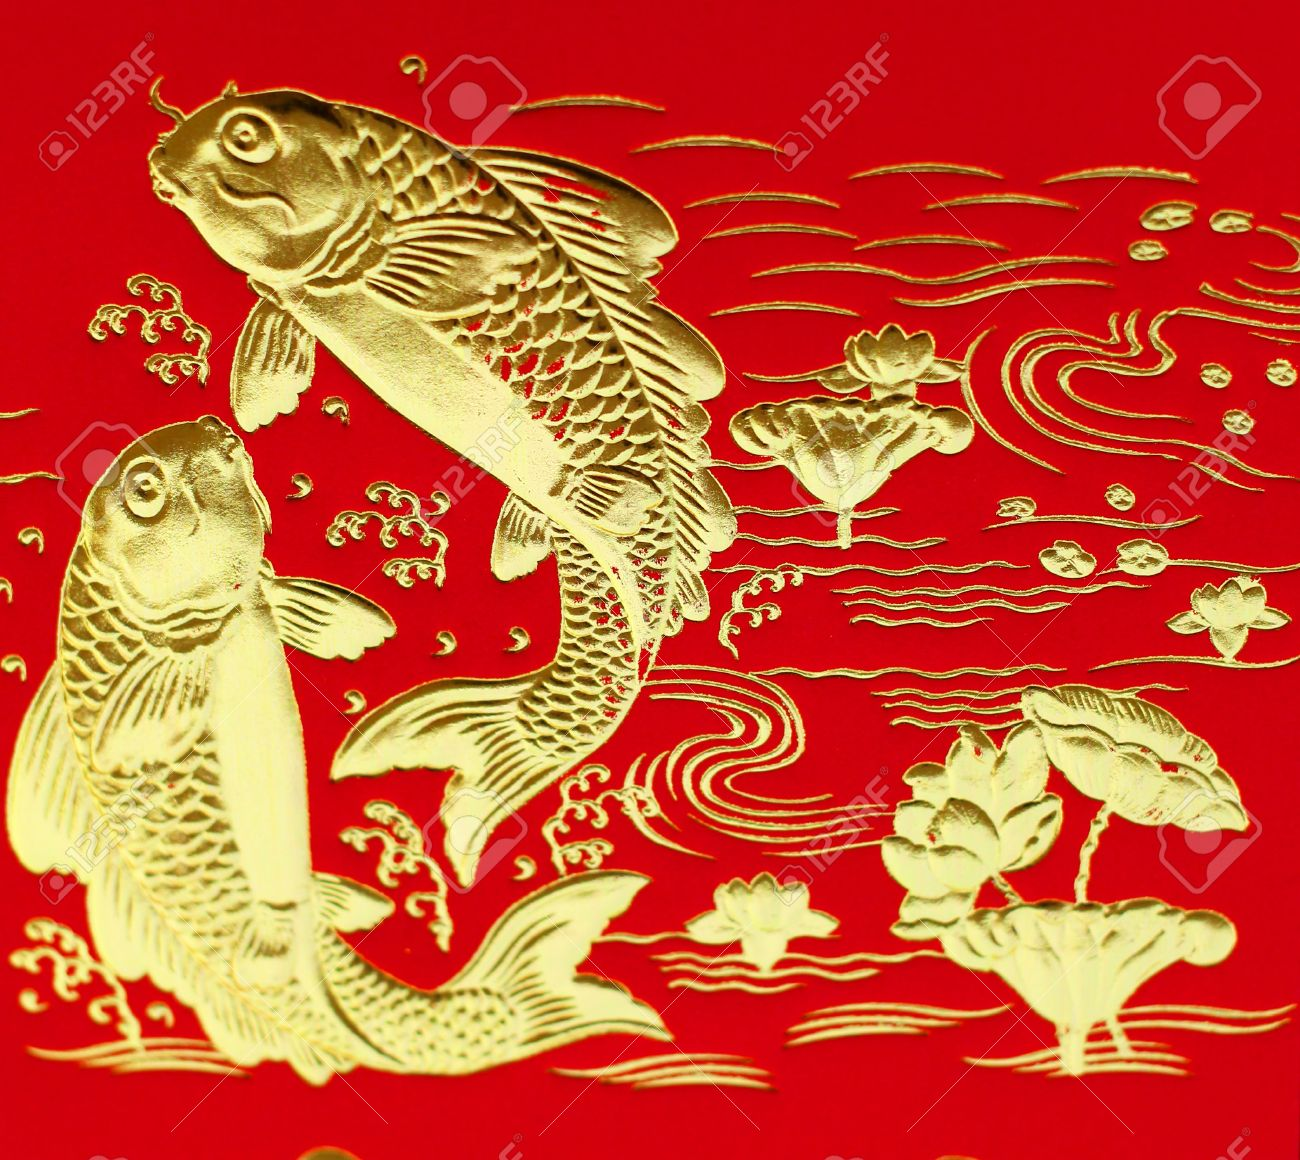 Auspicious double fish symbol for chinese stock photo picture and auspicious double fish symbol for chinese stock photo 26244843 buycottarizona Gallery